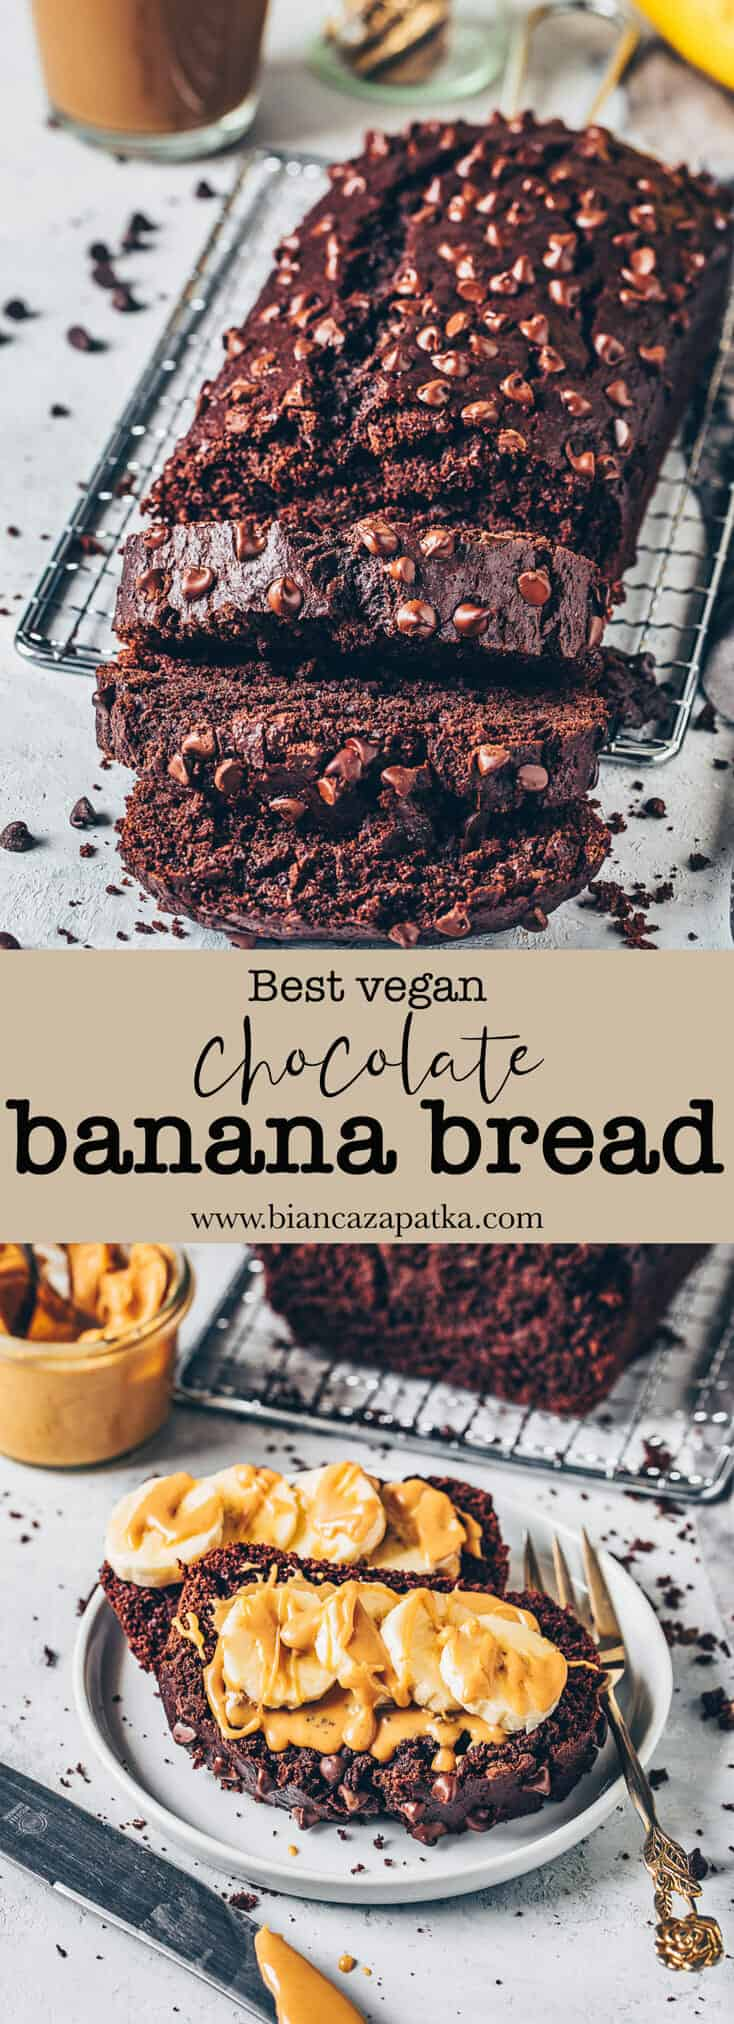 Best Vegan Chocolate Banana Bread Recipe is quick and easy to make in one bowl! It is soft, moist, rich, gluten-free, dairy-free, eggless, and tastes like a chocolate cake!